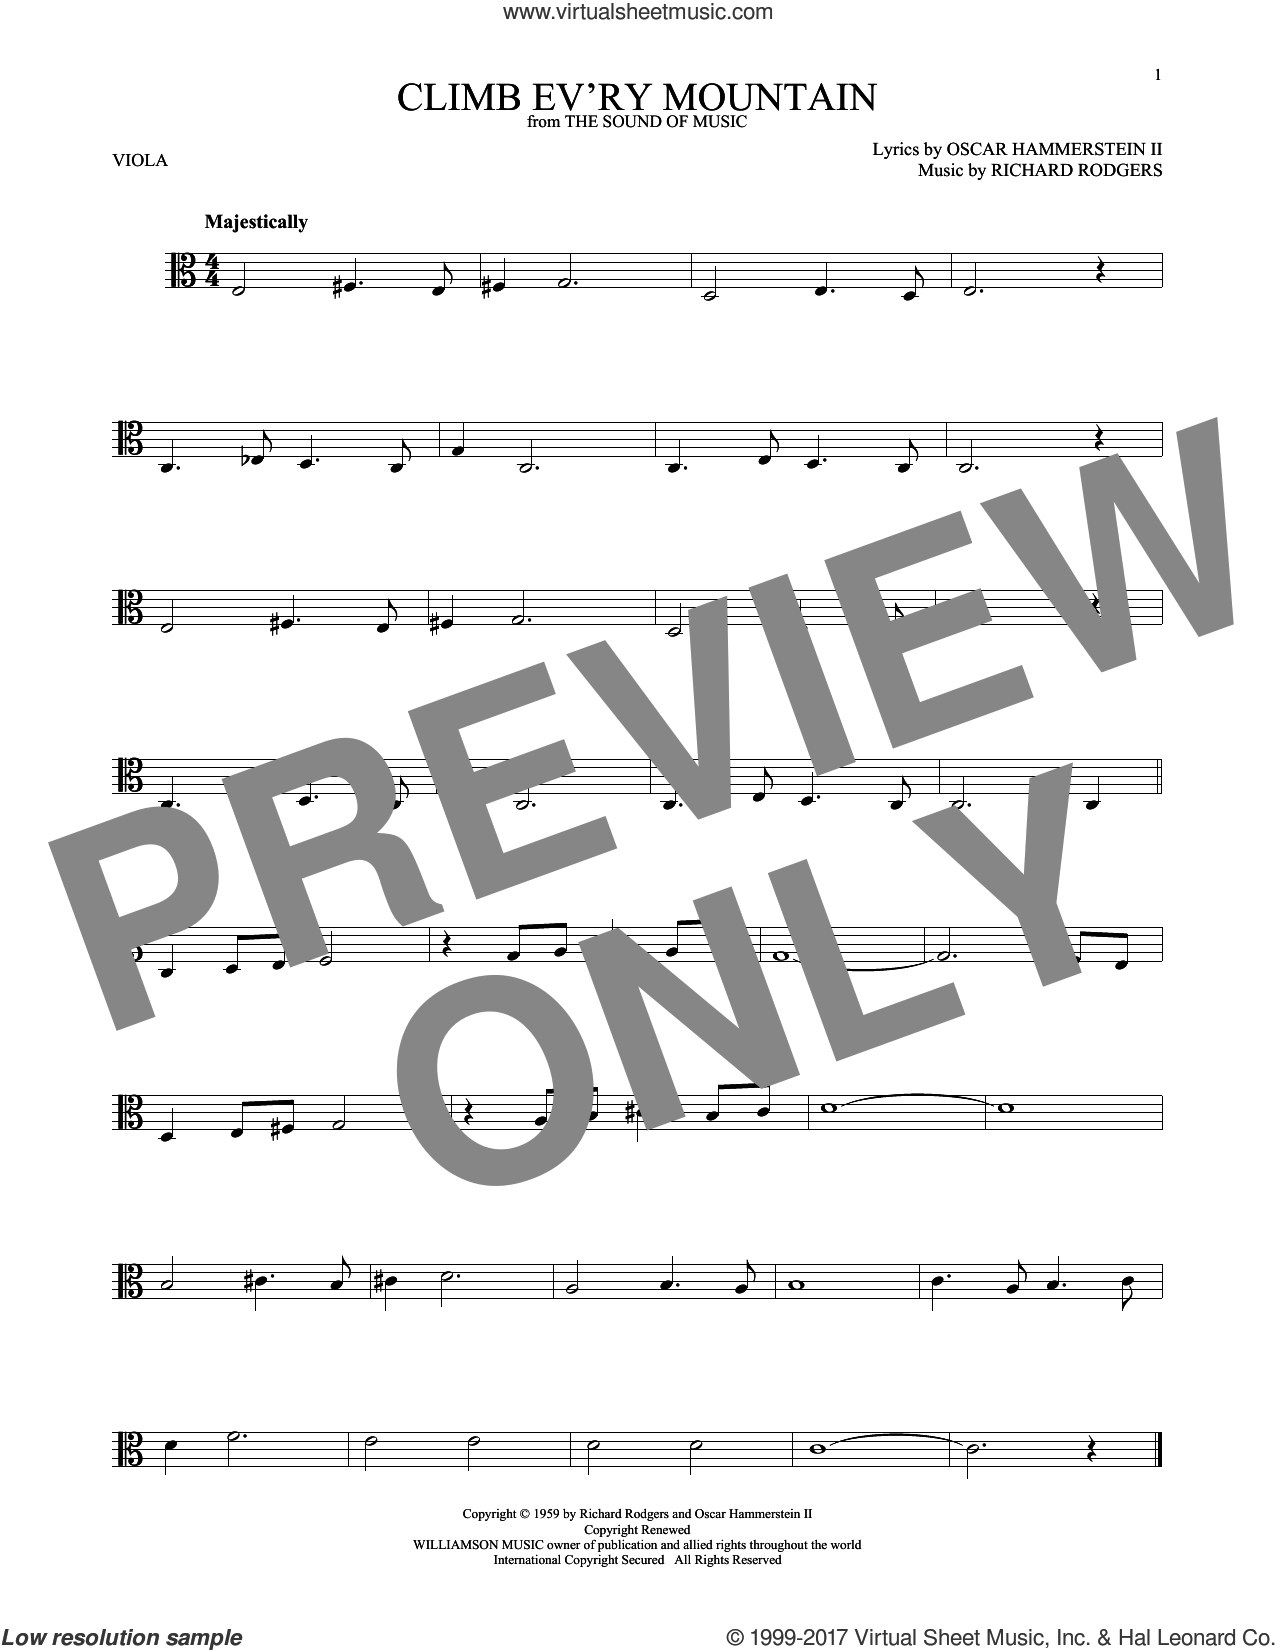 Climb Ev'ry Mountain sheet music for viola solo by Rodgers & Hammerstein, Oscar II Hammerstein and Richard Rodgers, intermediate skill level